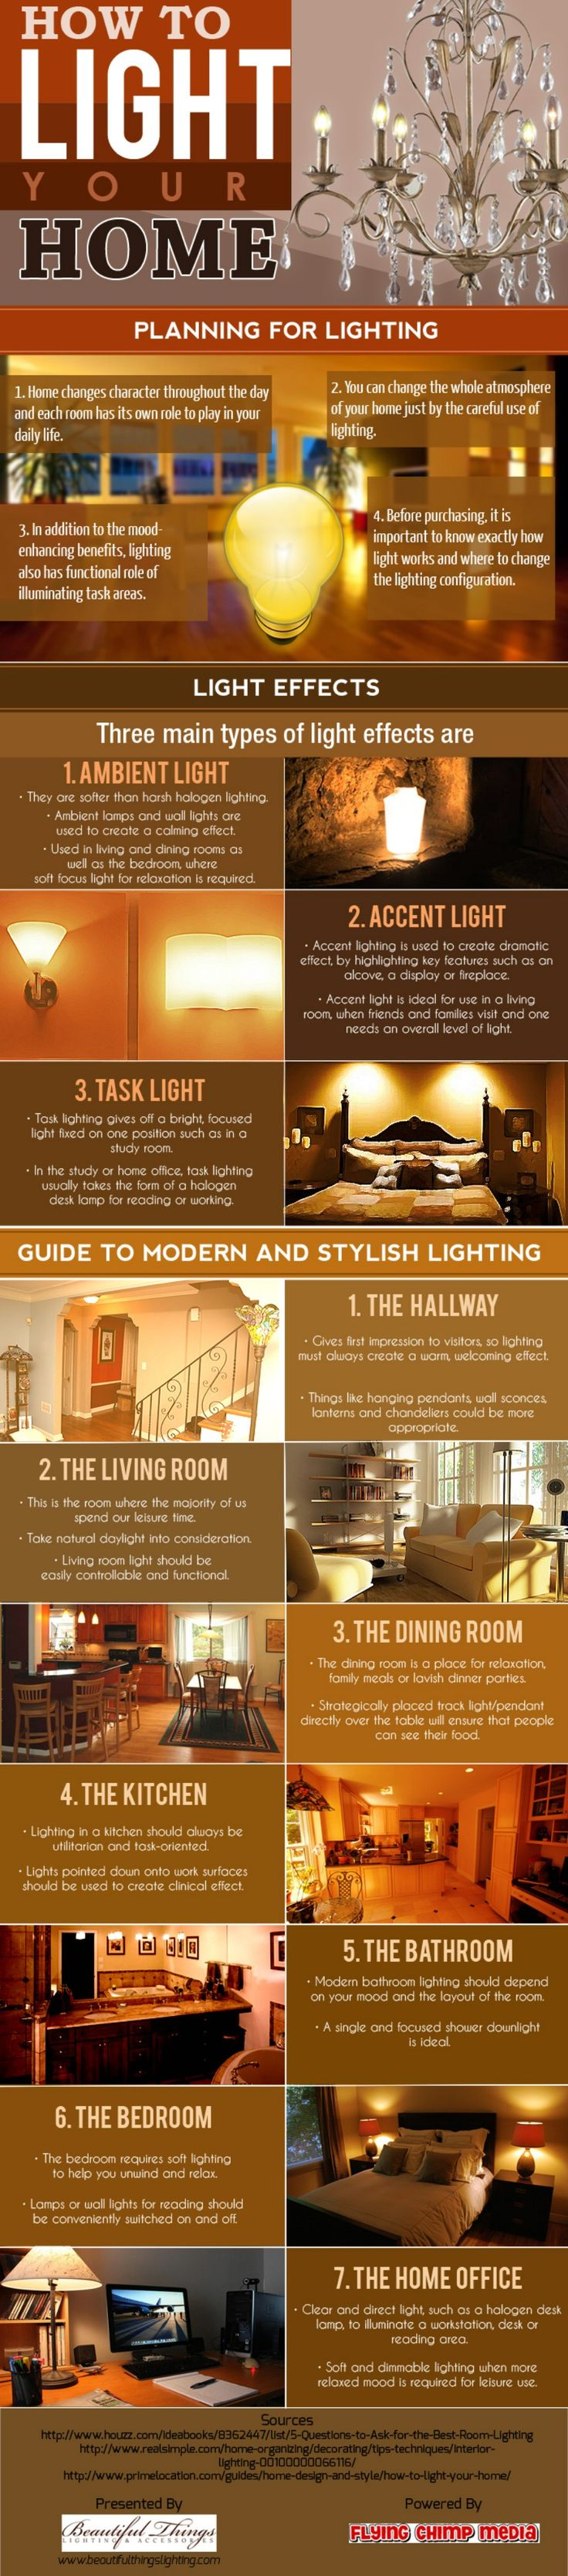 Best Ideas About Home Lighting On Pinterest Lighting Ideas - Home lighting designs